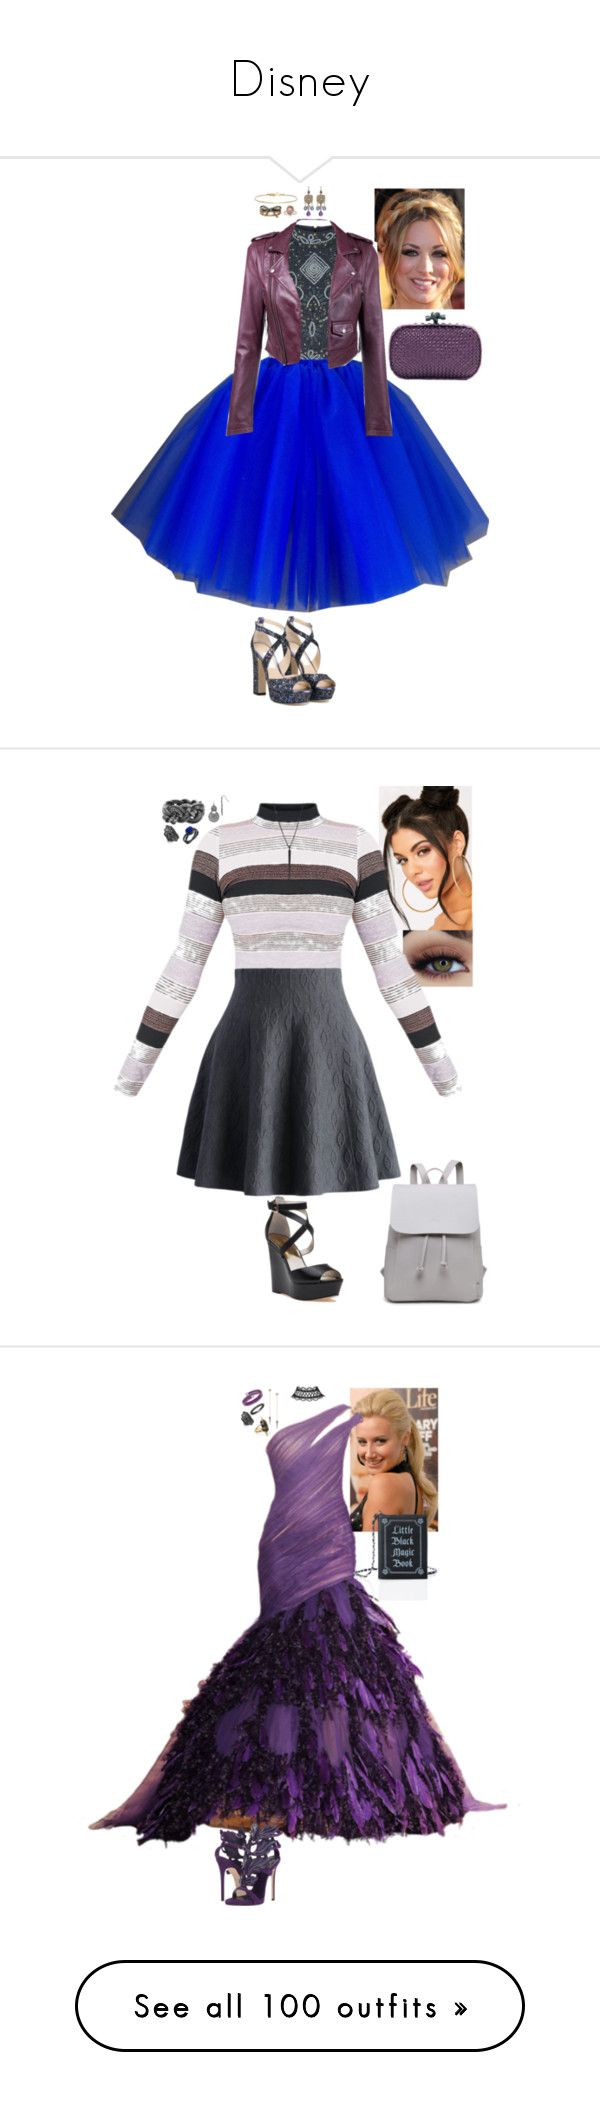 """""""Disney"""" by stinze on Polyvore featuring Jimmy Choo, Bottega Veneta, Isabel Marant, Marc Jacobs, ABS by Allen Schwartz, 1928, Chicwish, nOir, MICHAEL Michael Kors and Witchery"""